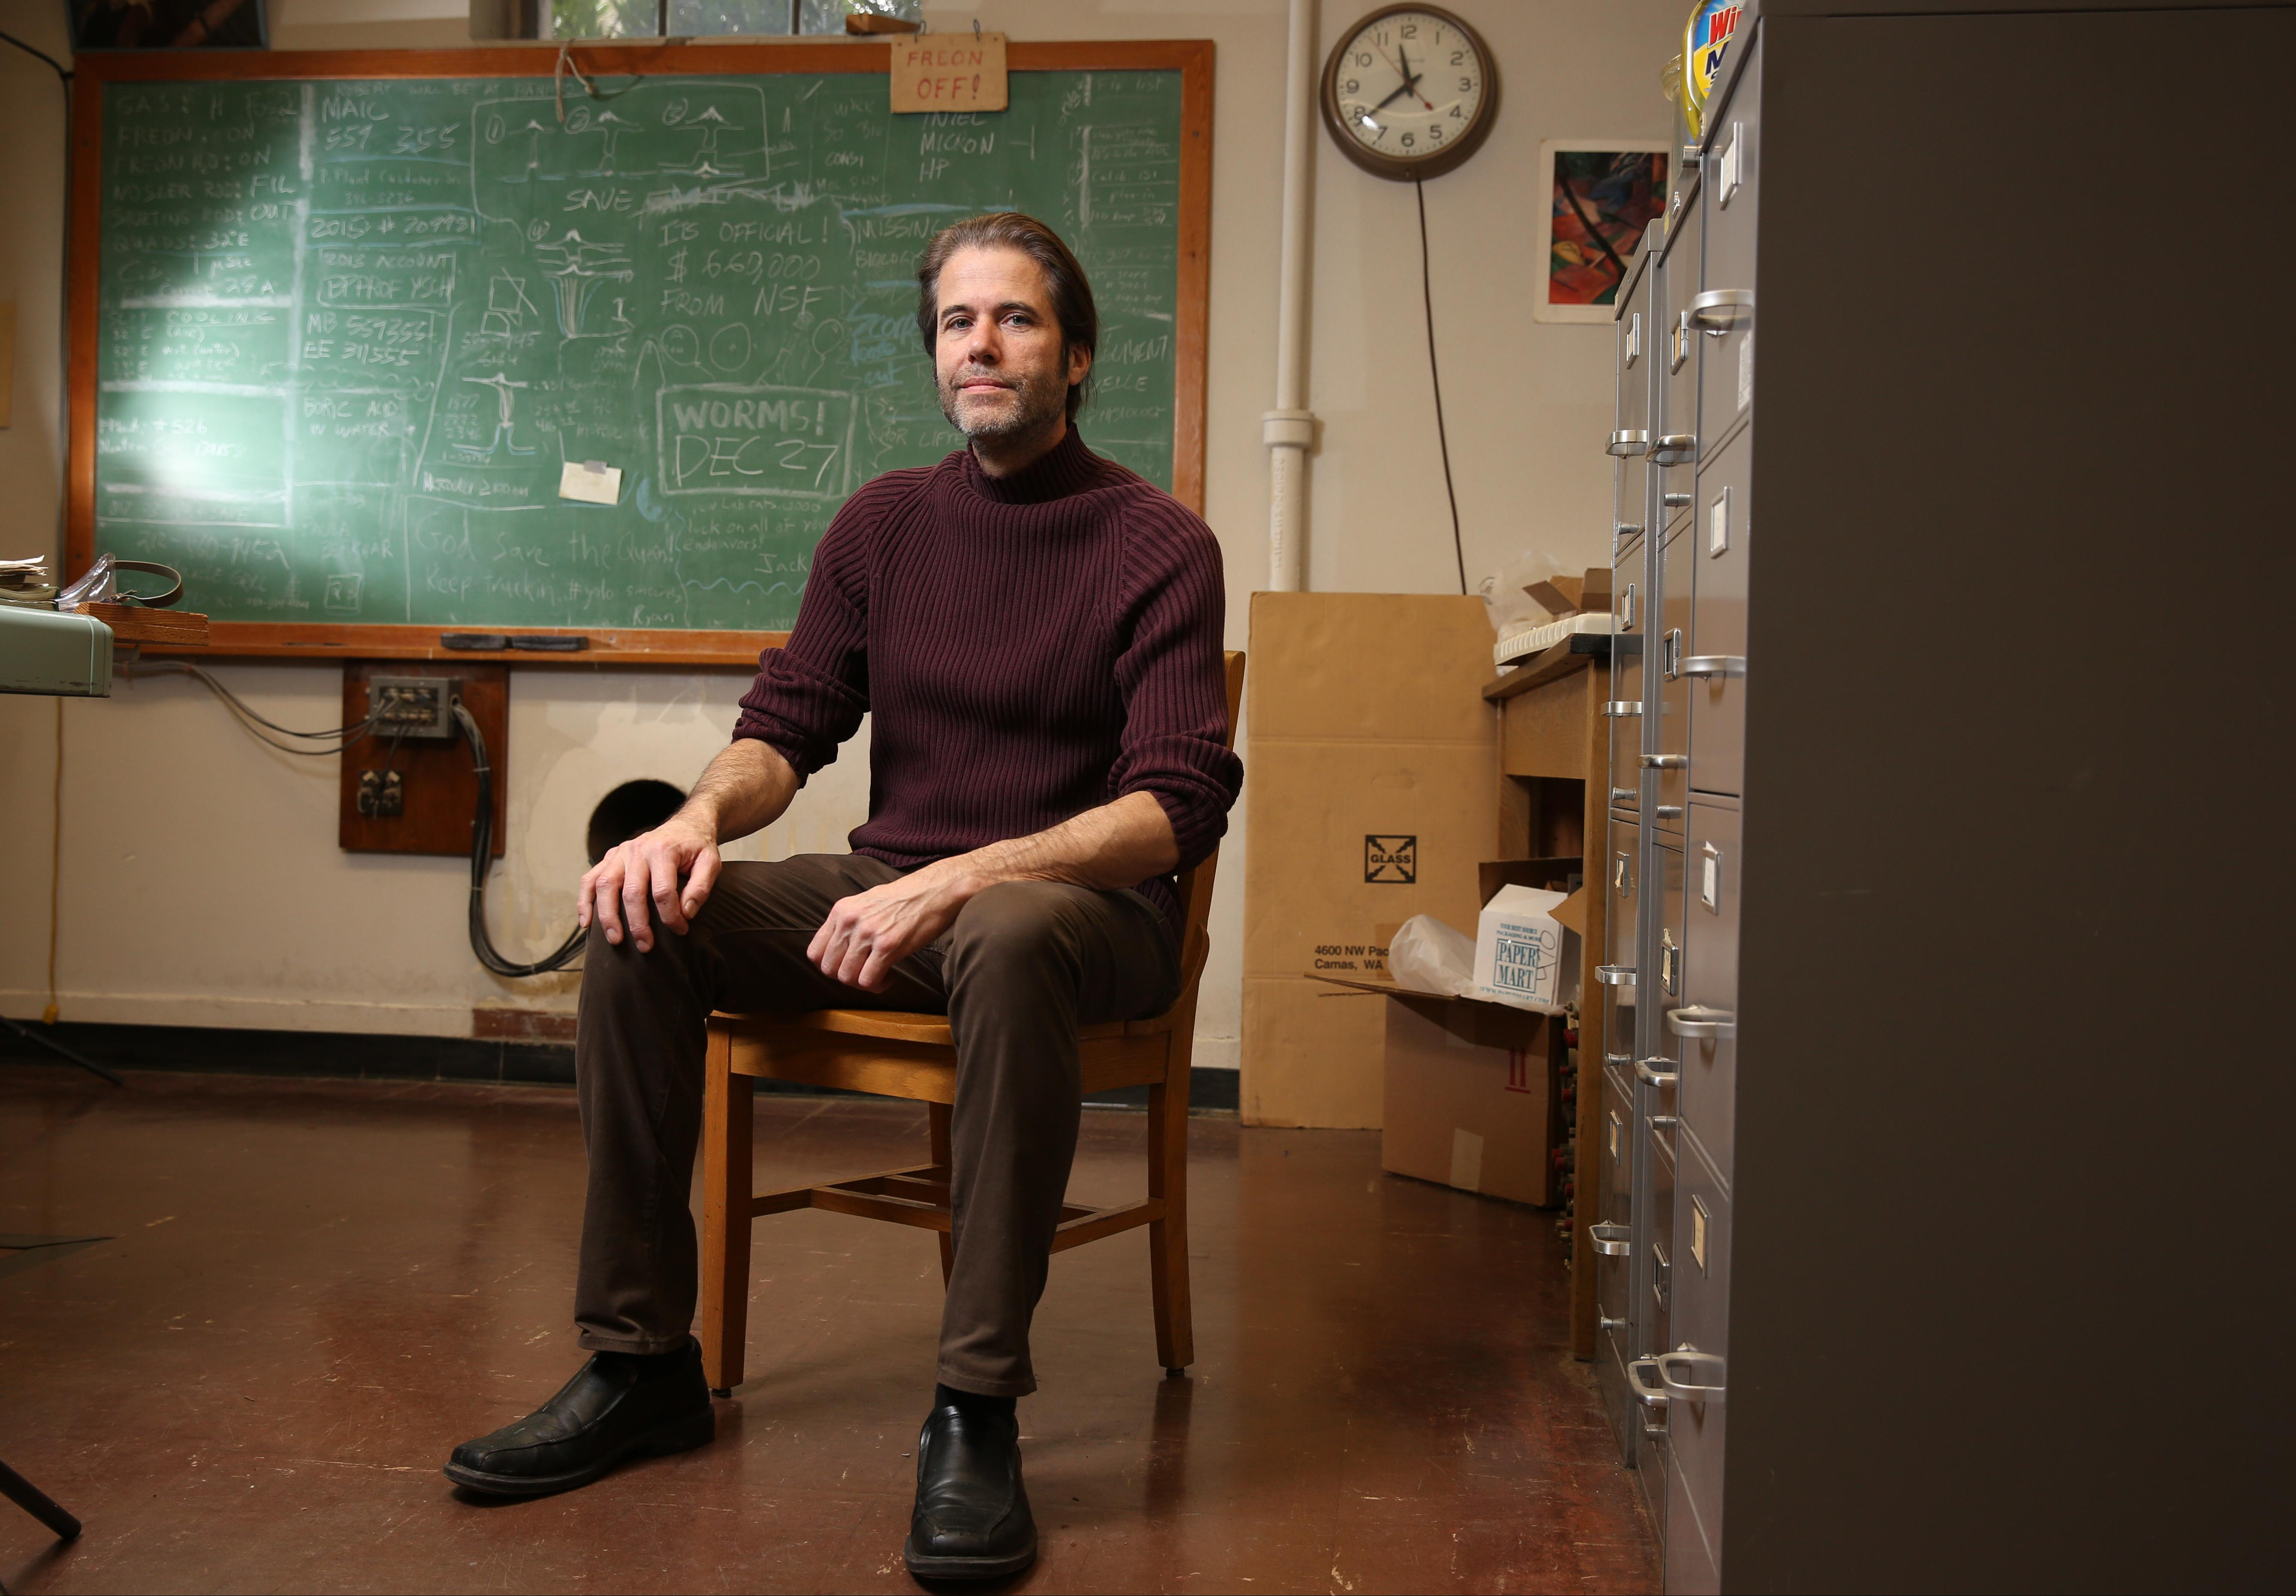 Robert Schofield poses for a picture inside his lab on Tuesday, Jan 26, 2016, on the campus of the University of Oregon in Eugene, Oregon.